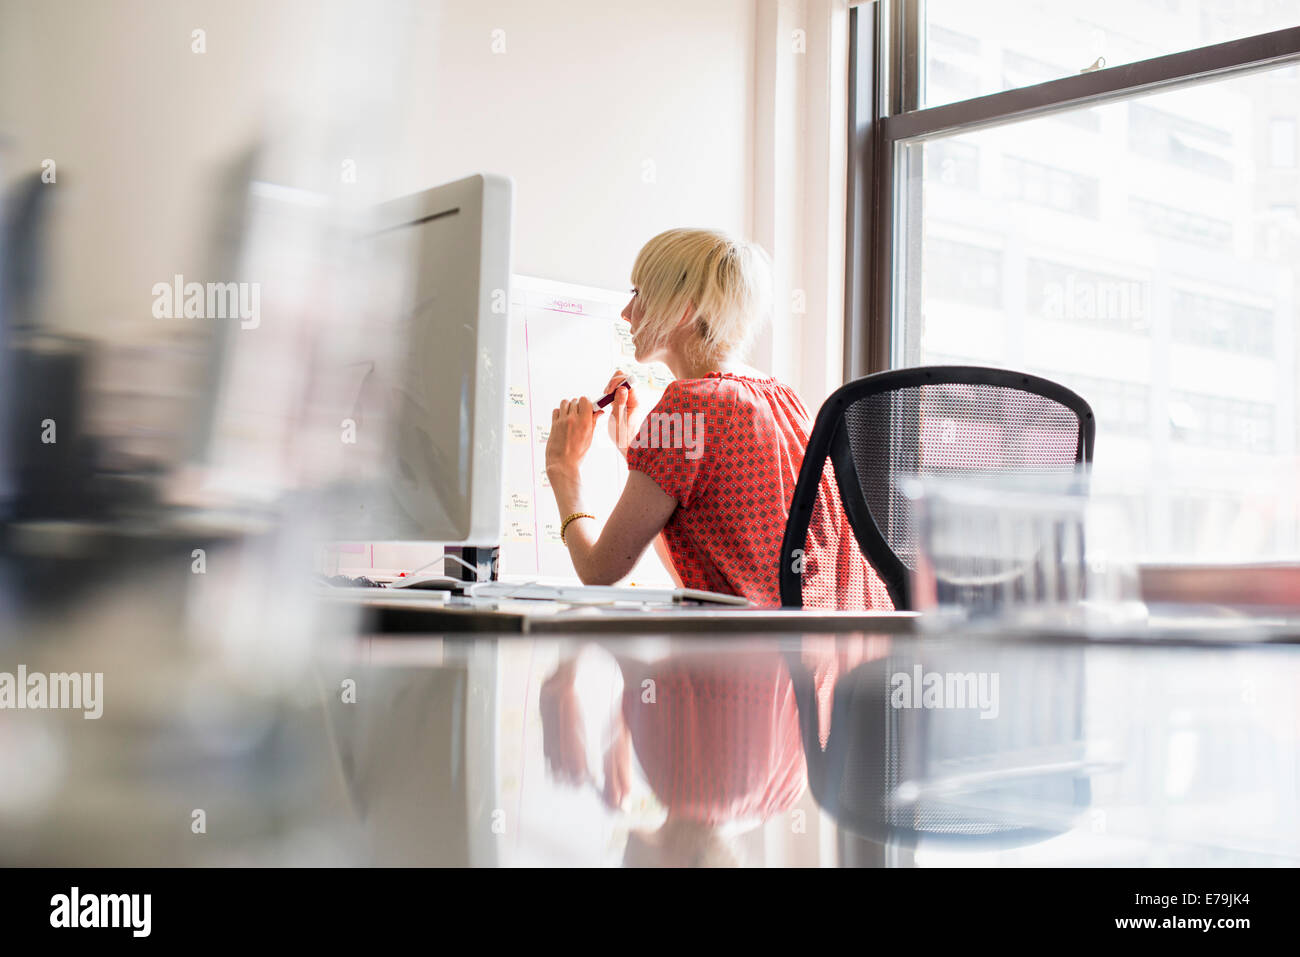 Office life. A young woman working at an office desk. - Stock Image